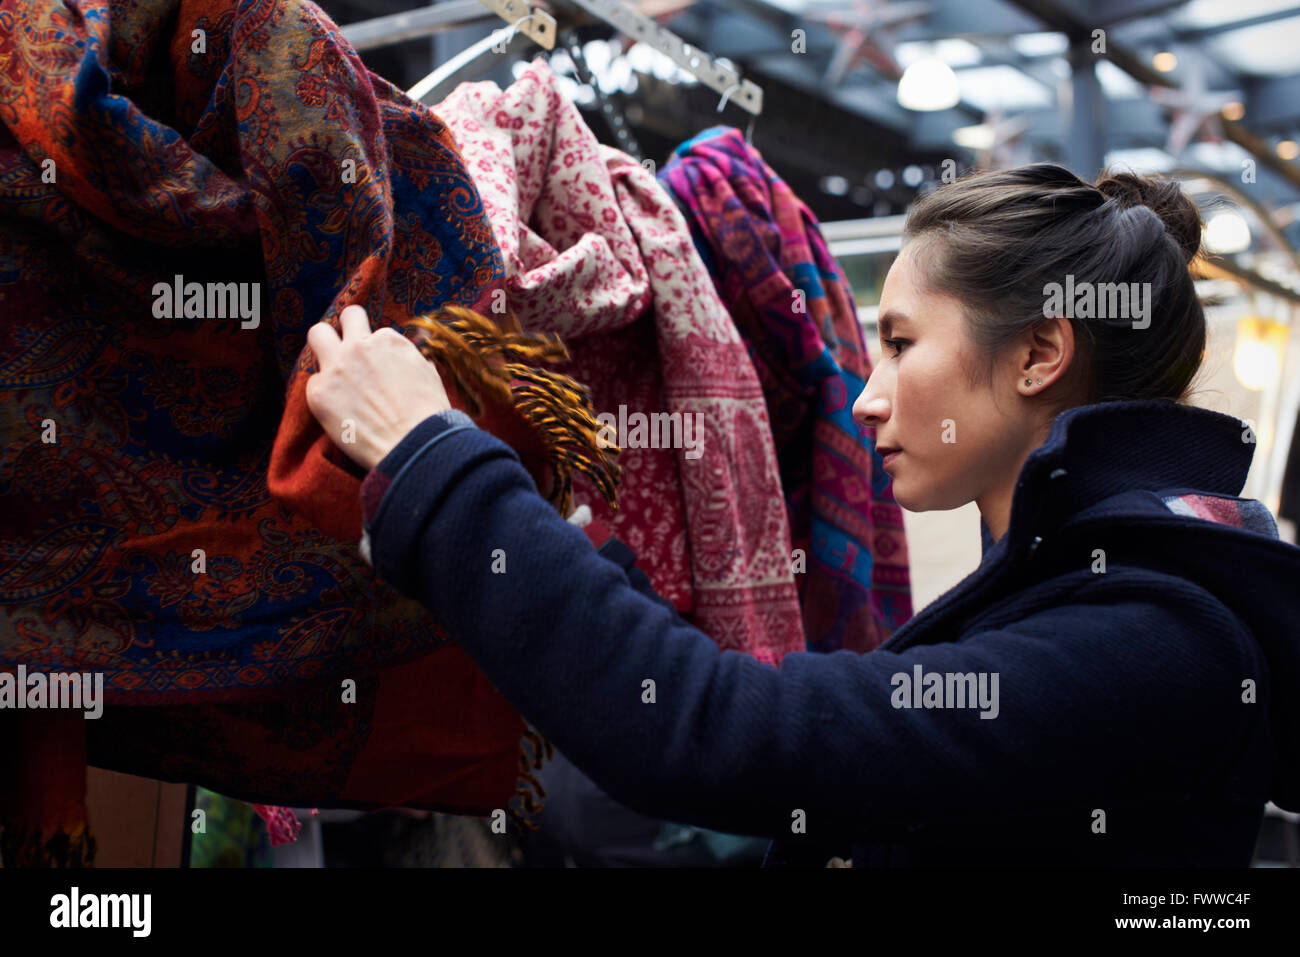 Young Woman Shopping In Covered Market Stock Foto